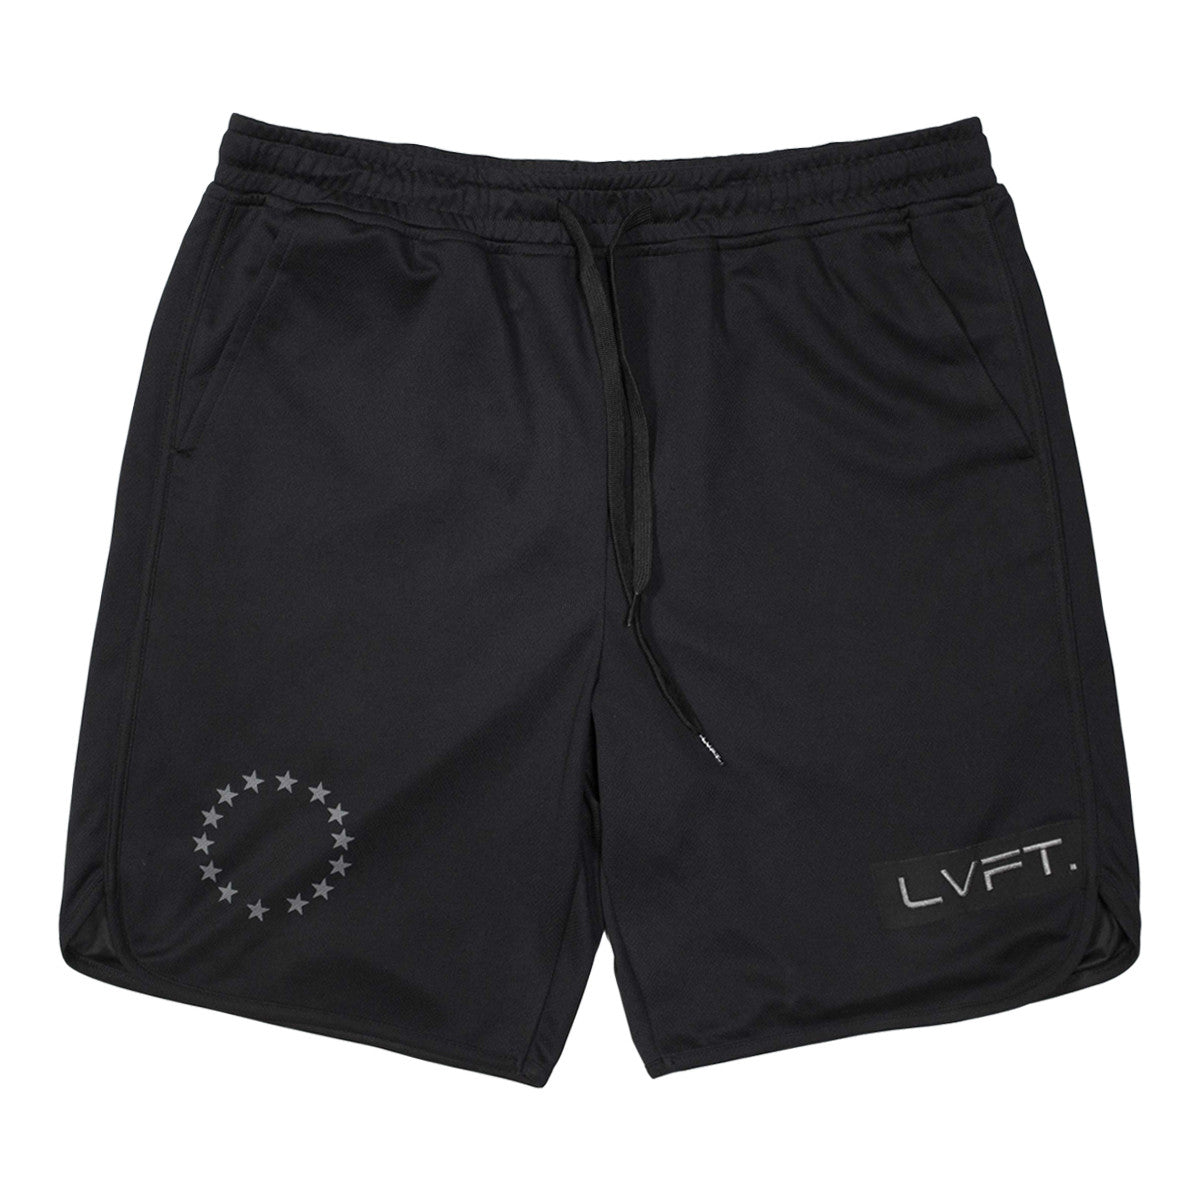 All Star Active Shorts - Black/Black